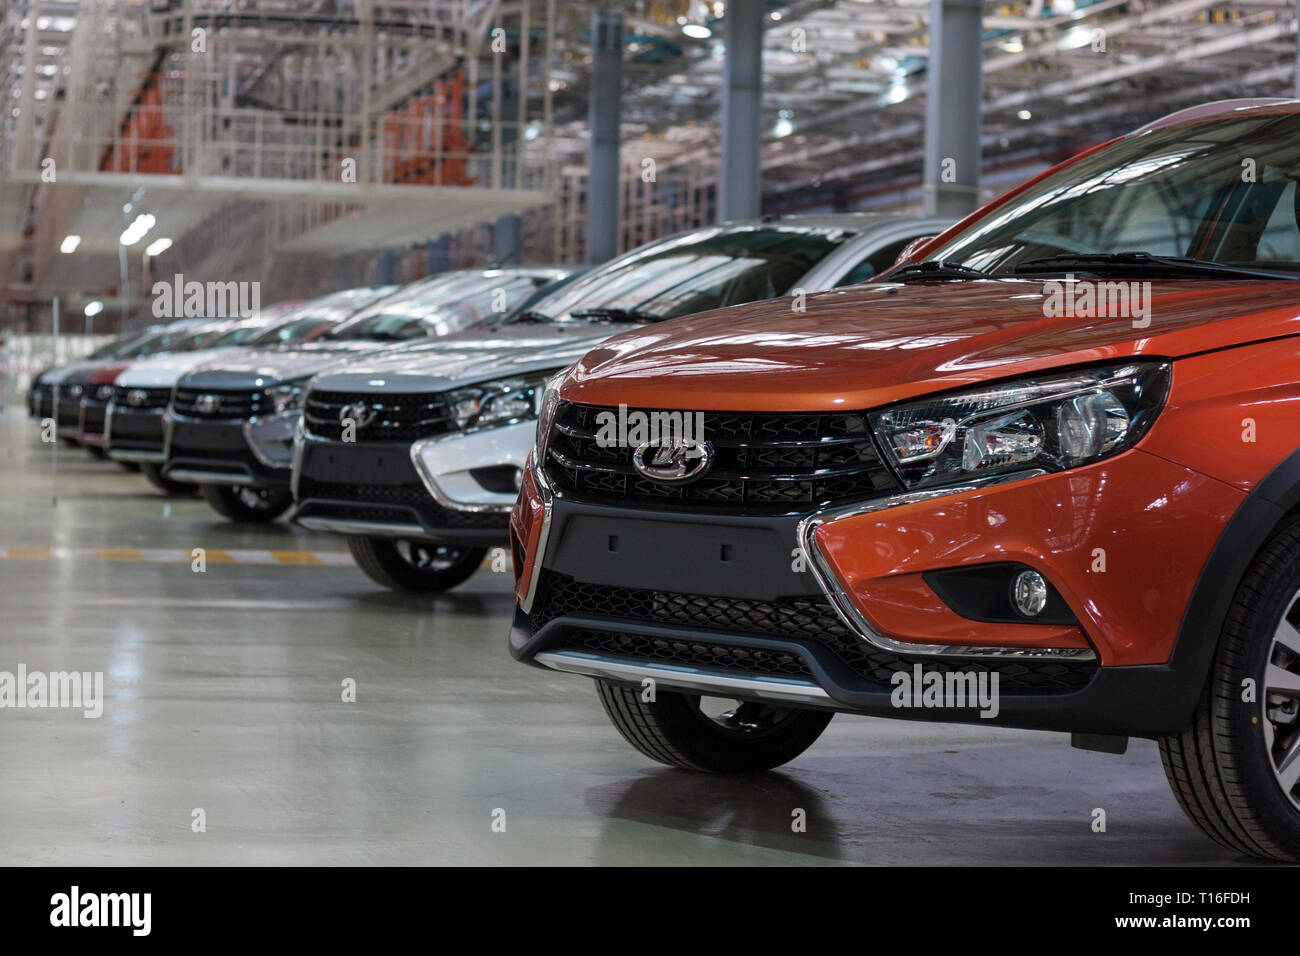 Russia, Izhevsk - December 15, 2018: LADA Automobile Plant Izhevsk, part of the AVTOVAZ Group. New modern cars Lada Vesta ready for sale. Stock Photo